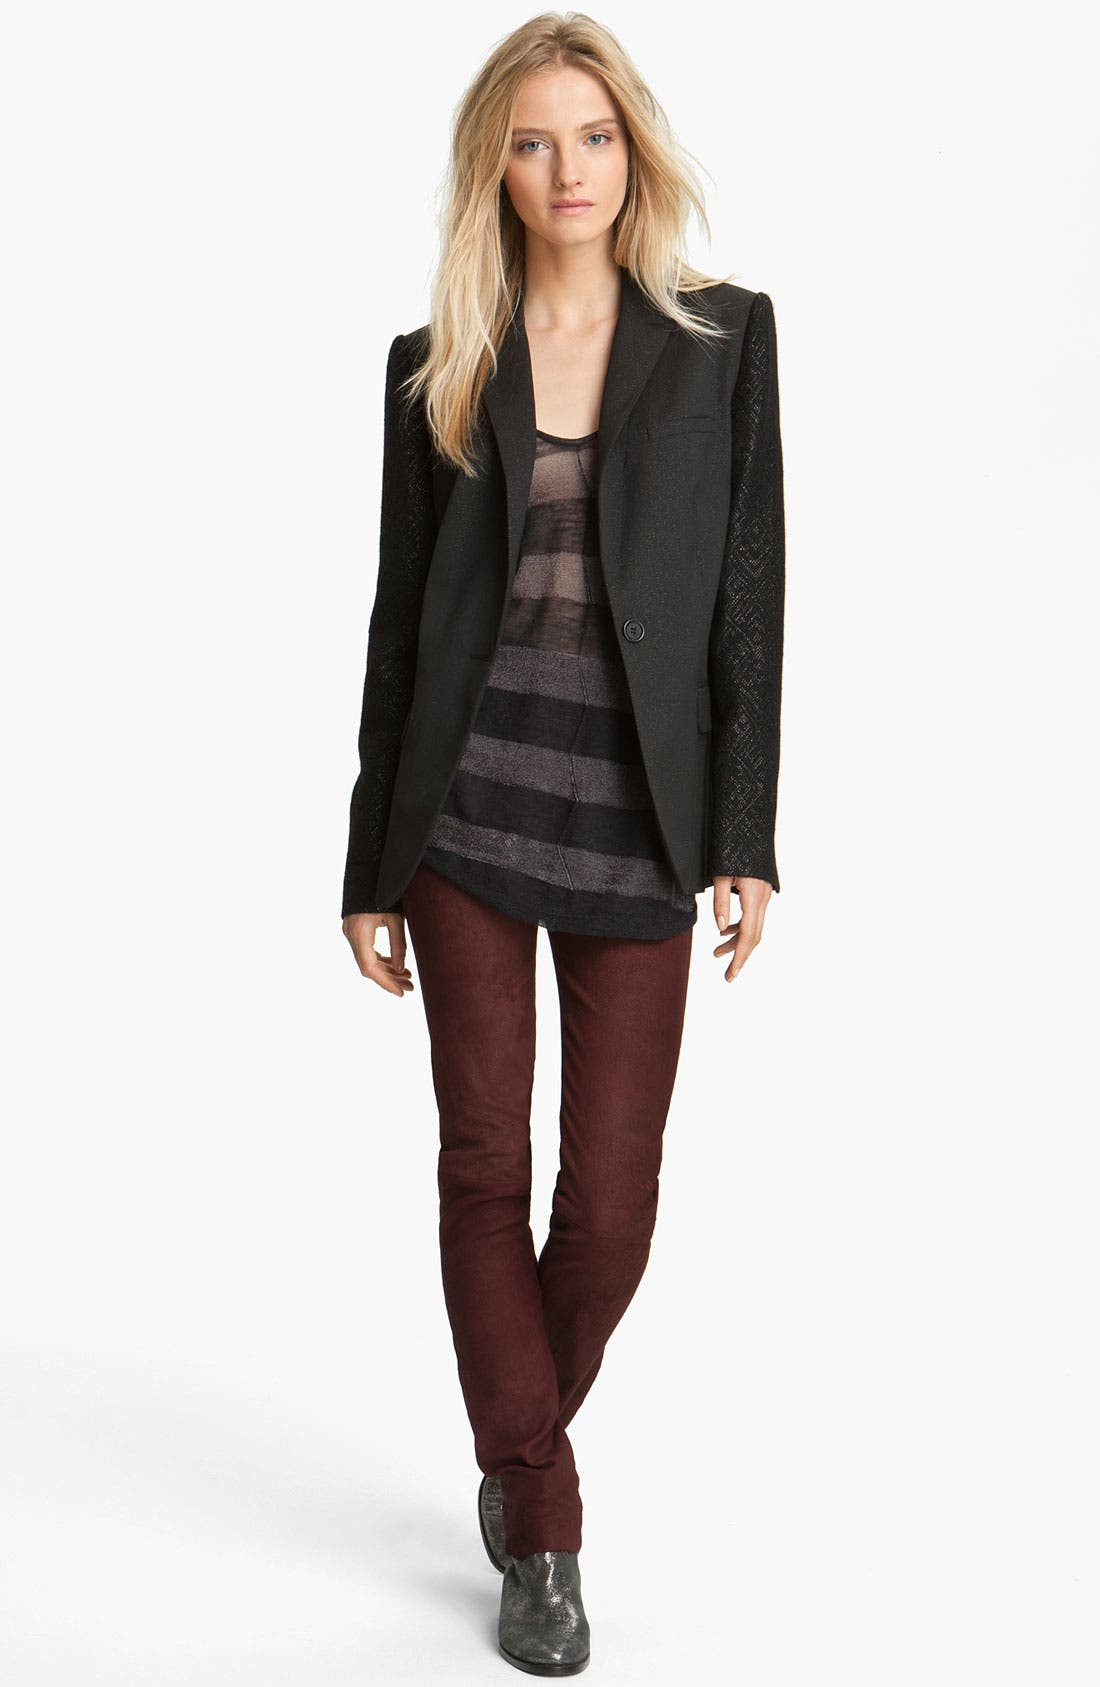 Alternate Image 1 Selected - Zadig & Voltaire 'Vanda' Textured Sleeve Jacket